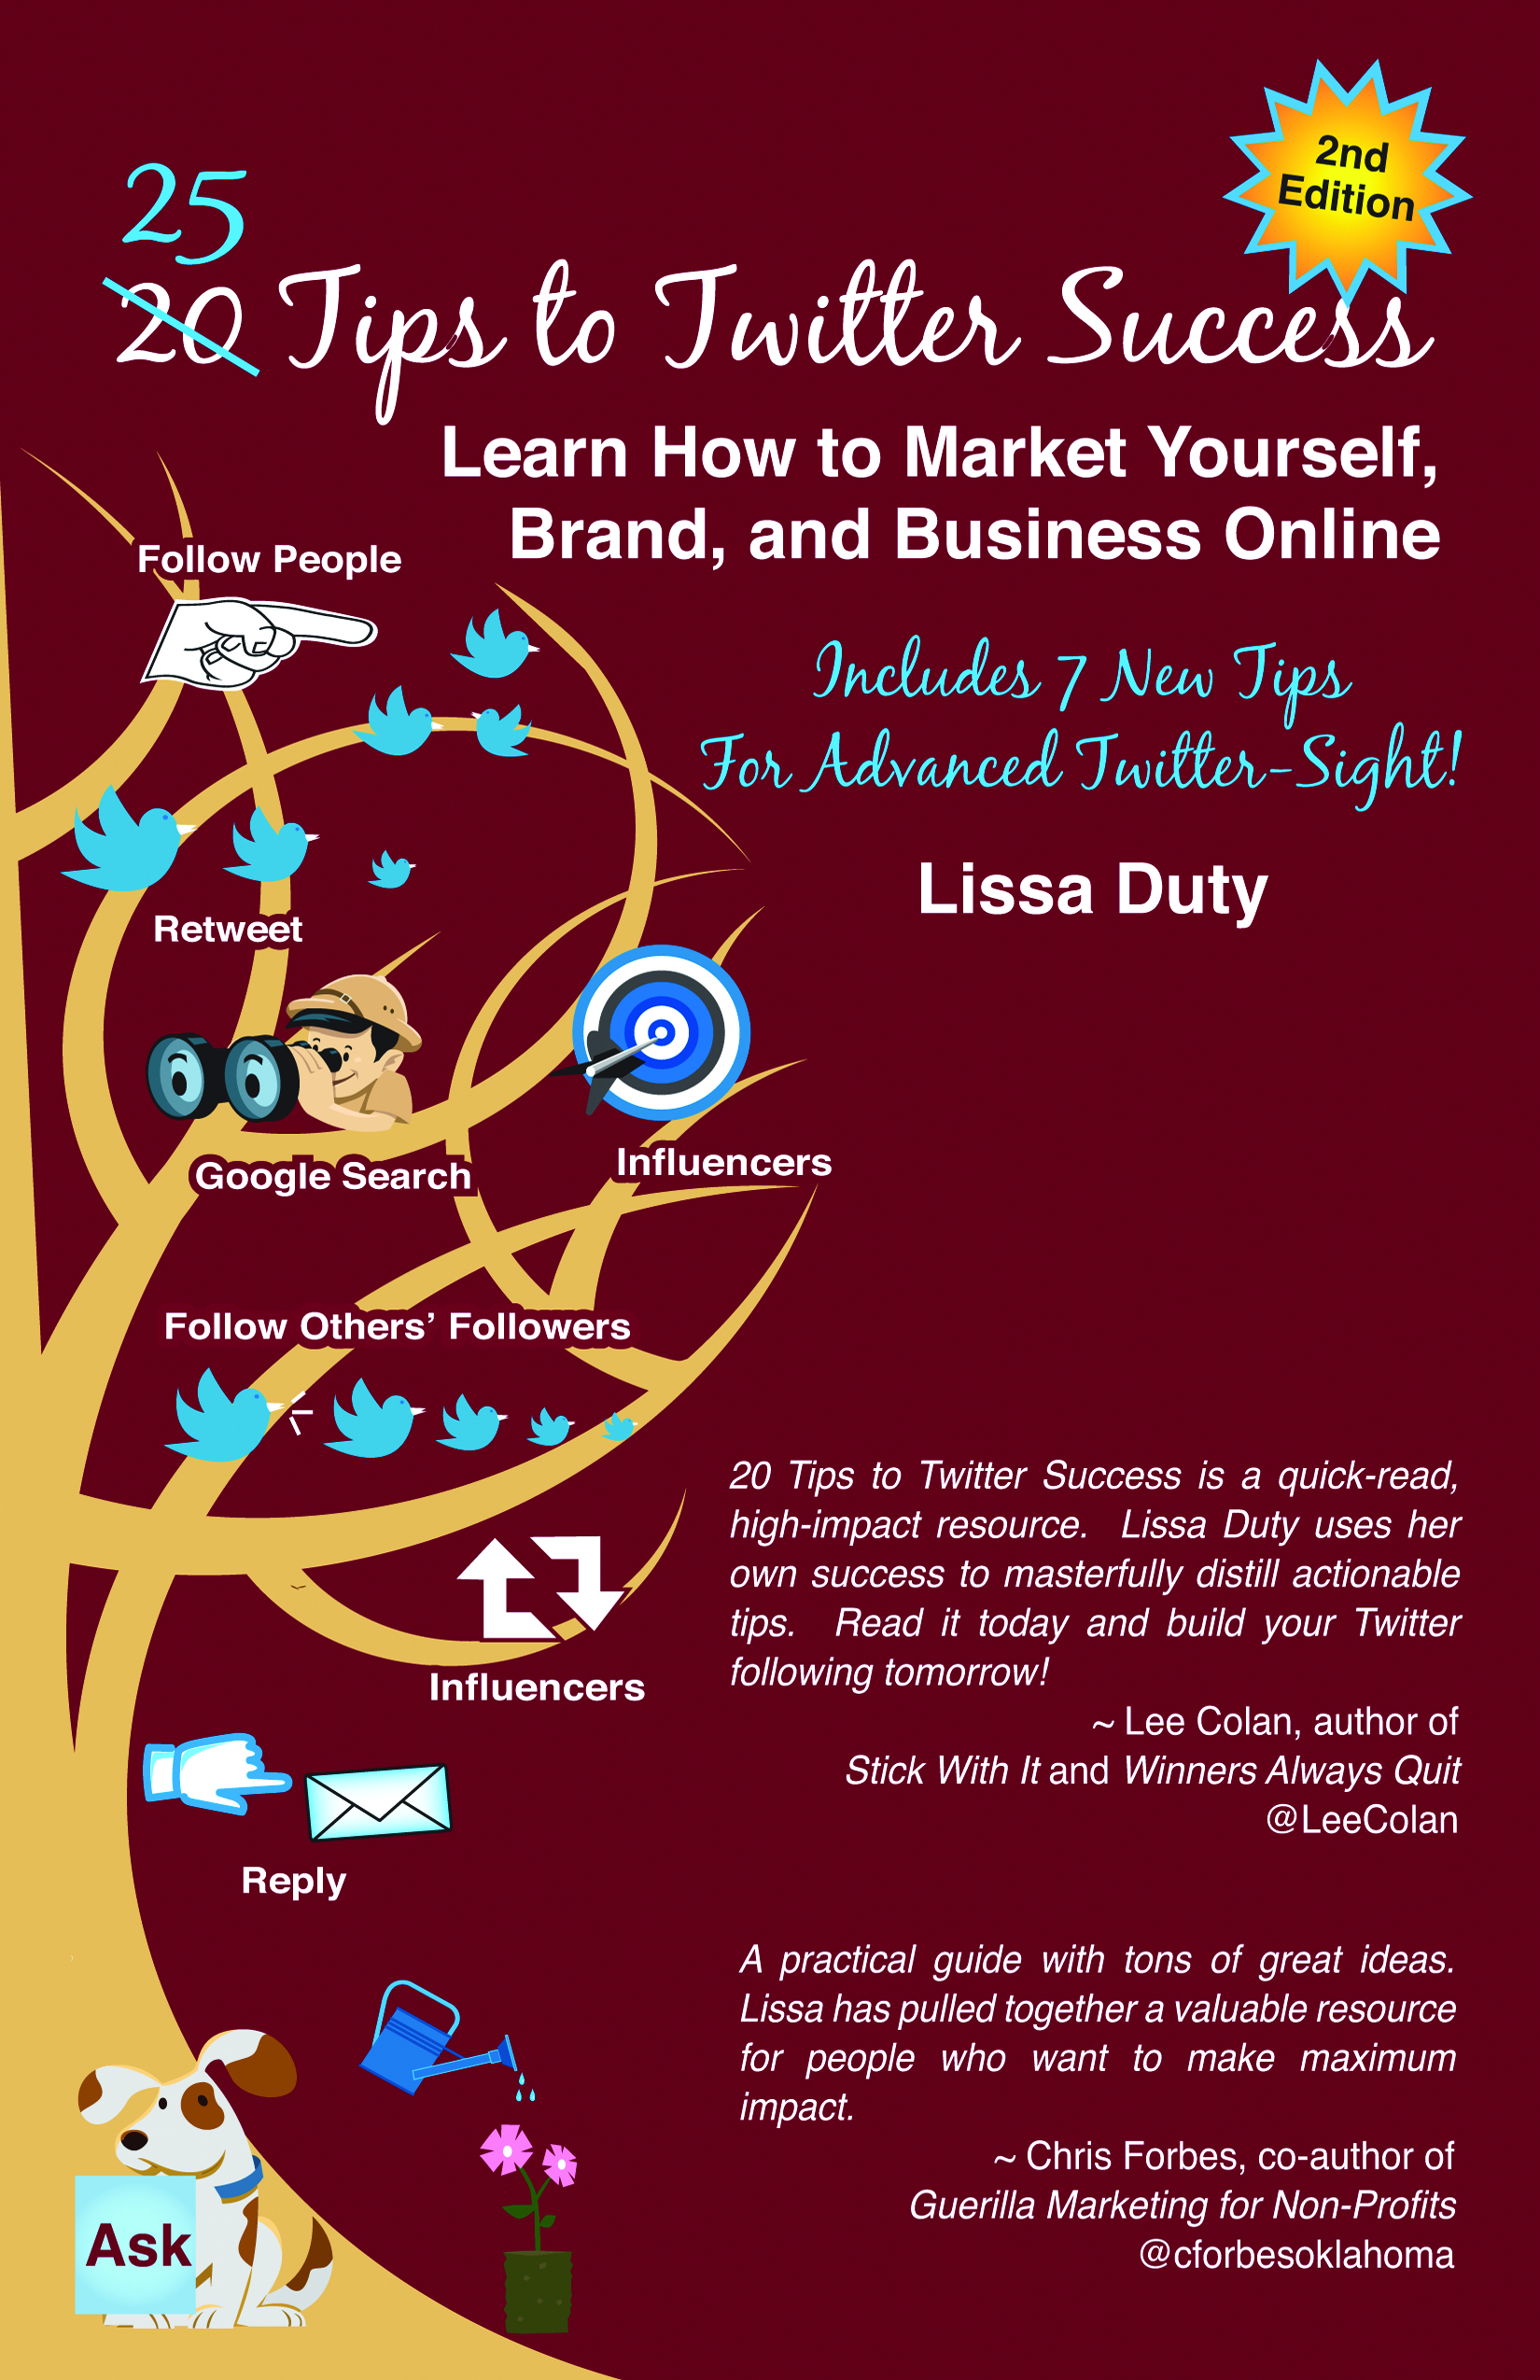 20 Tips to Twitter Success: Learn How to Market Yourself, Brand and Business Online by Lissa Duty